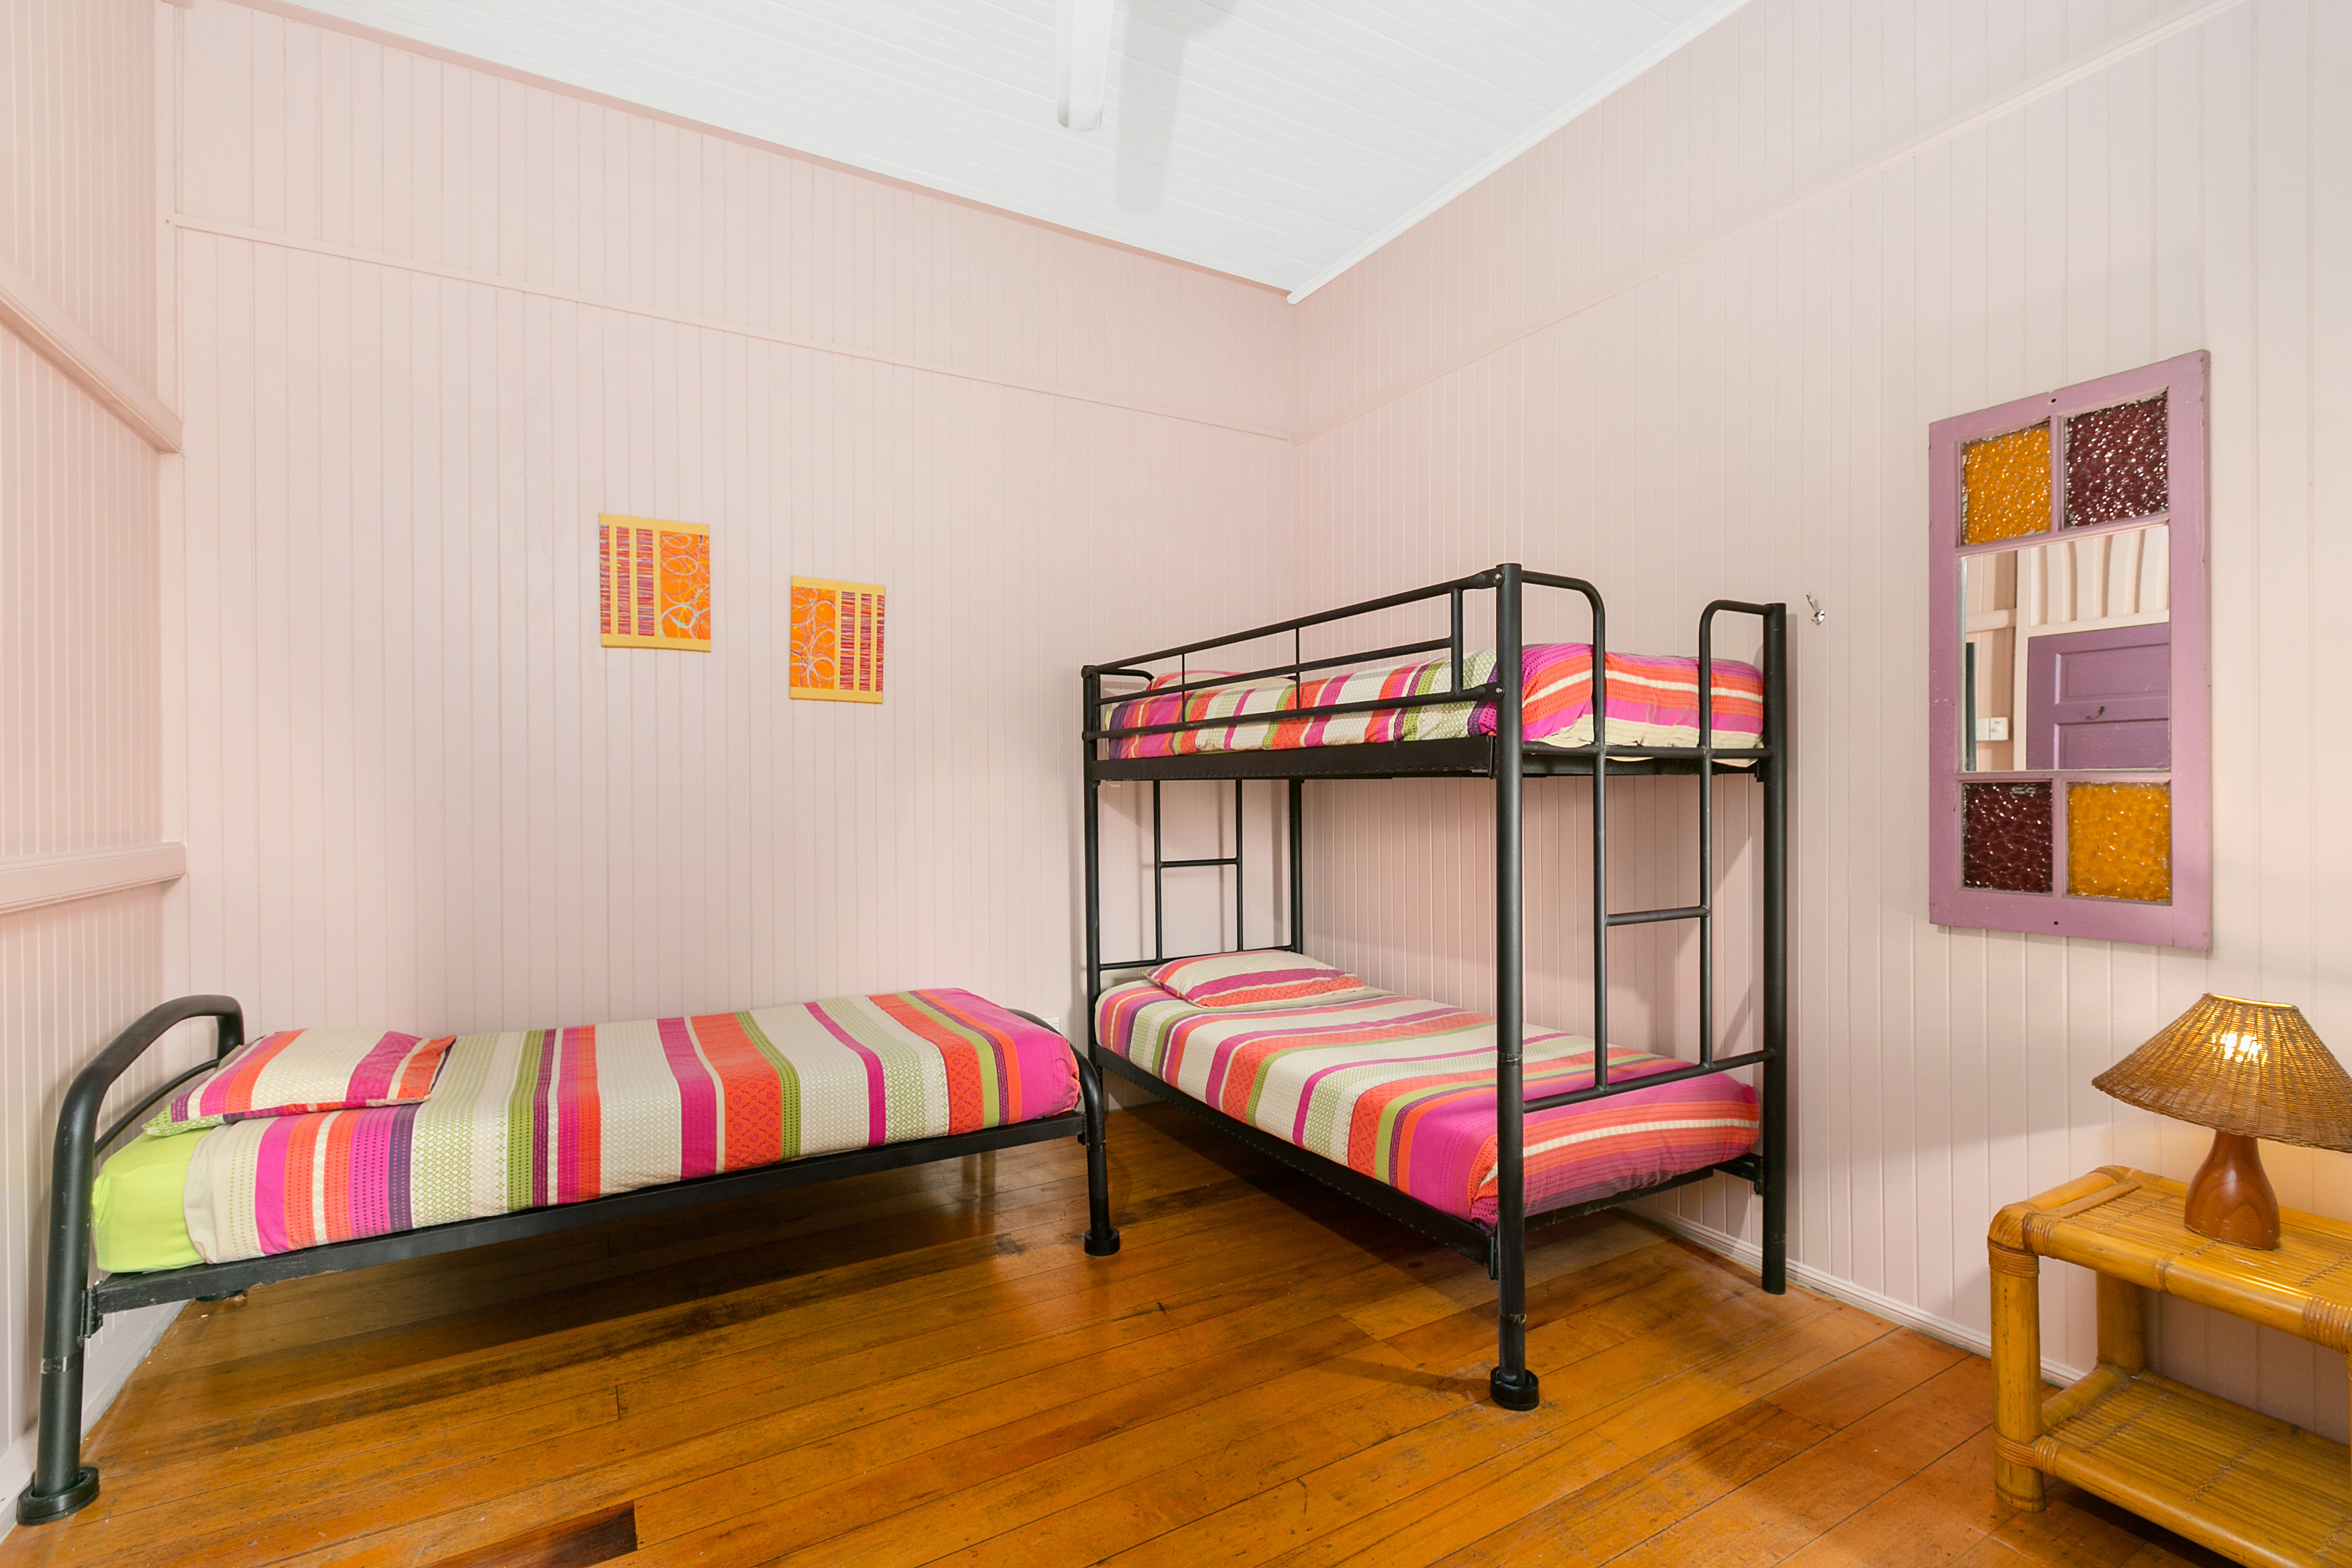 cairns-best-hostel-backpackers-dorm-share-cheap